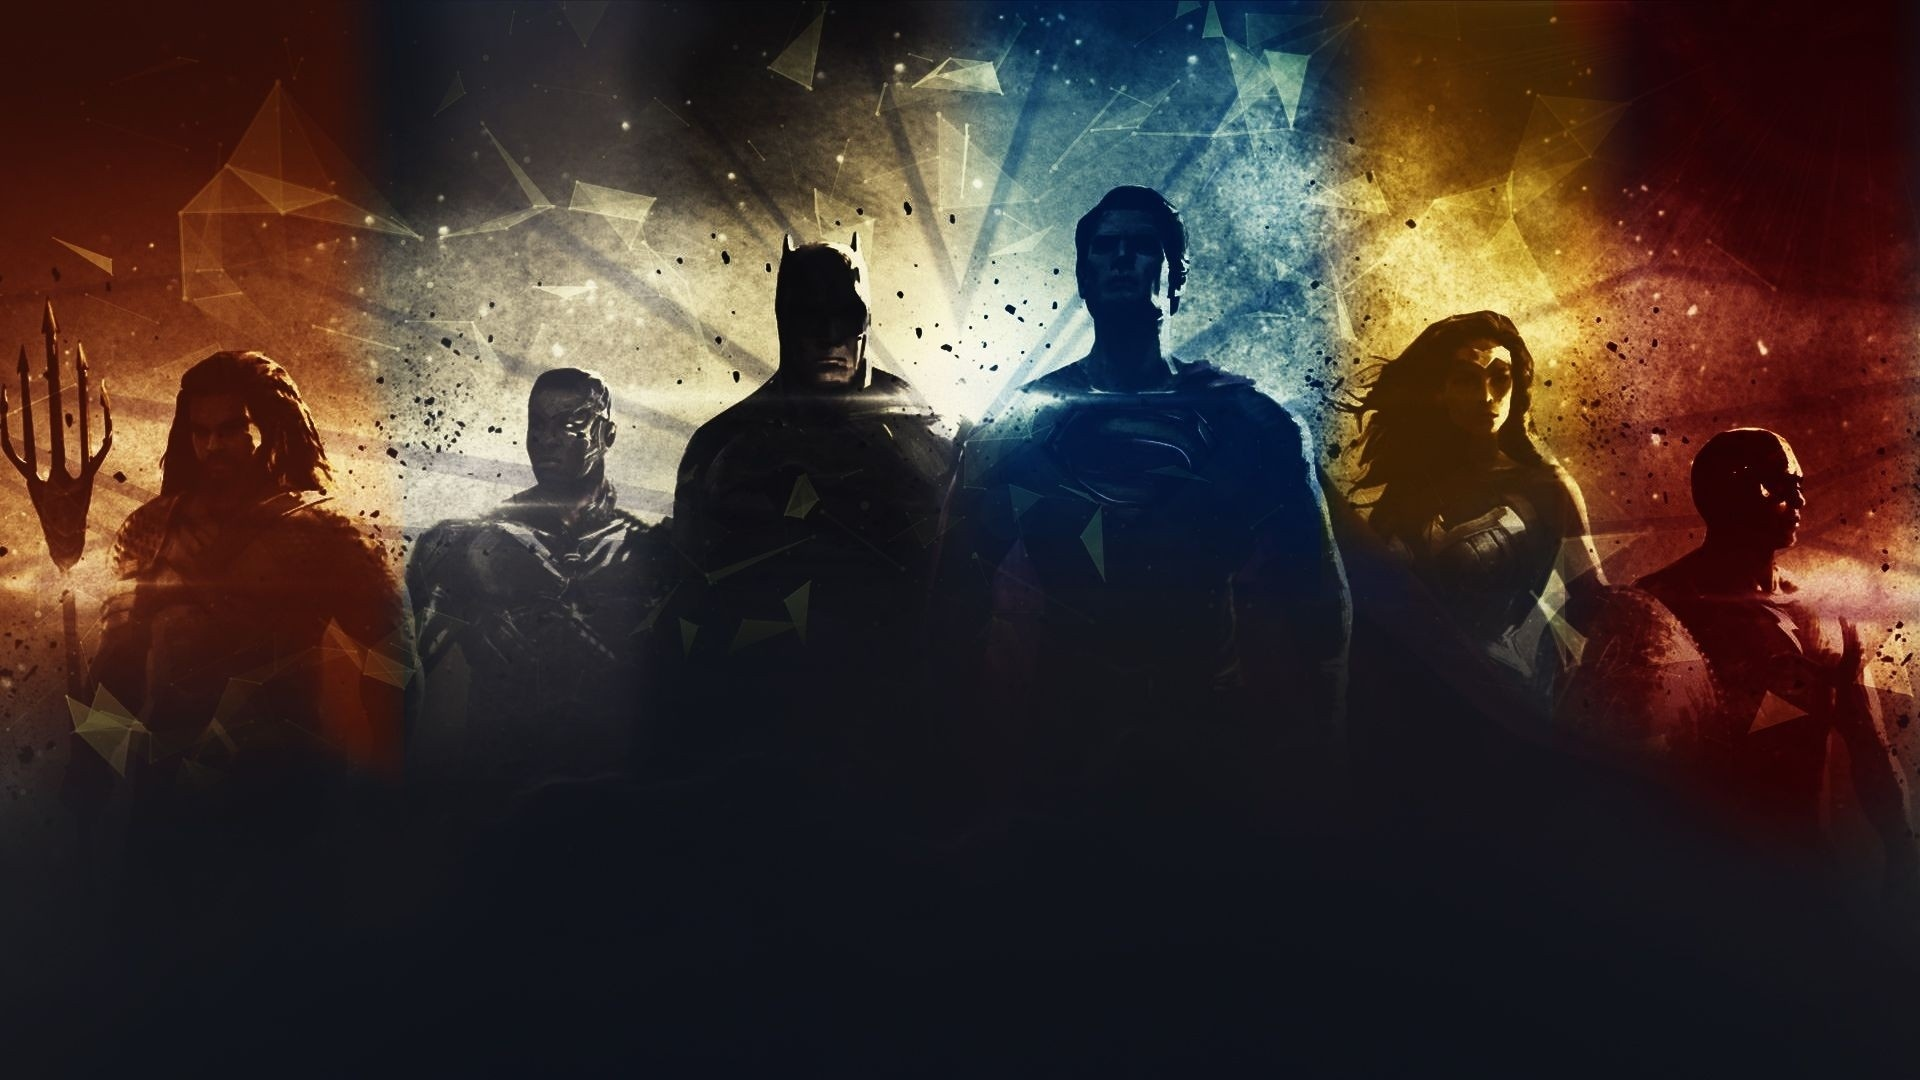 Justice League free background